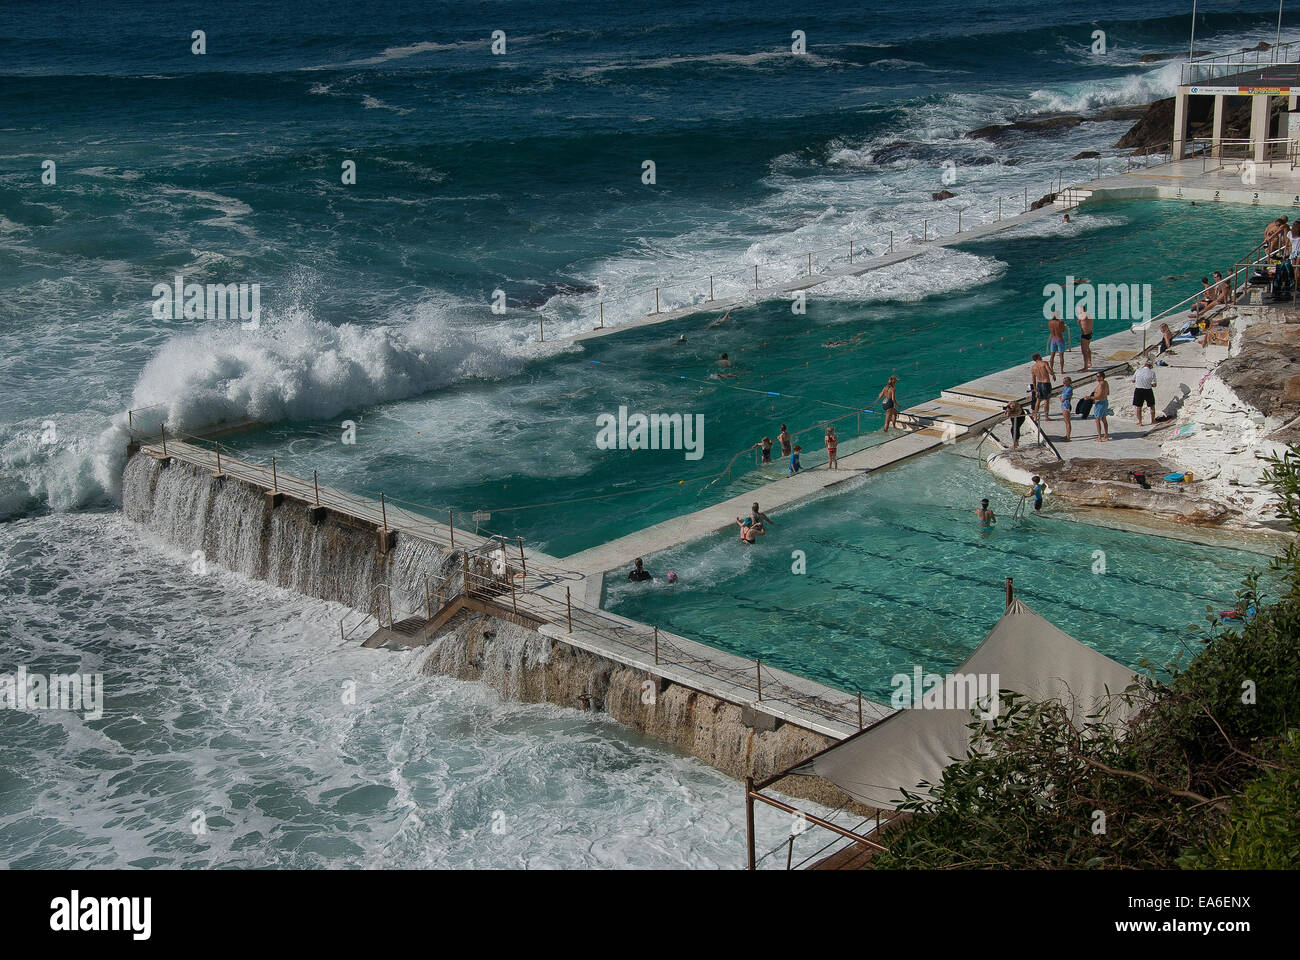 Australia, New South Wales, Sydney, Bondi public pool - Stock Image